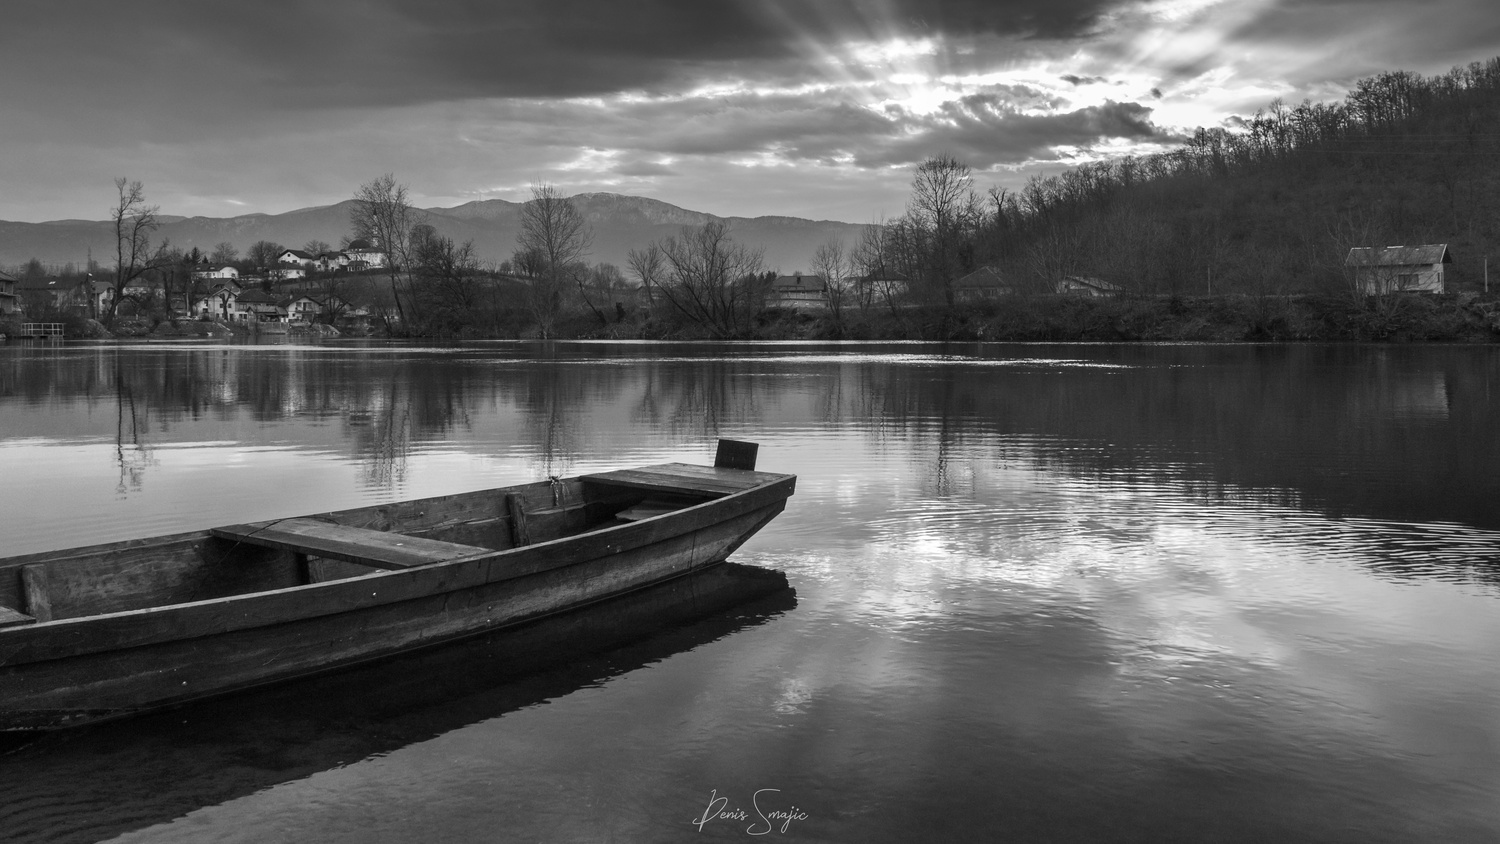 Colorless color by Denis Smajic